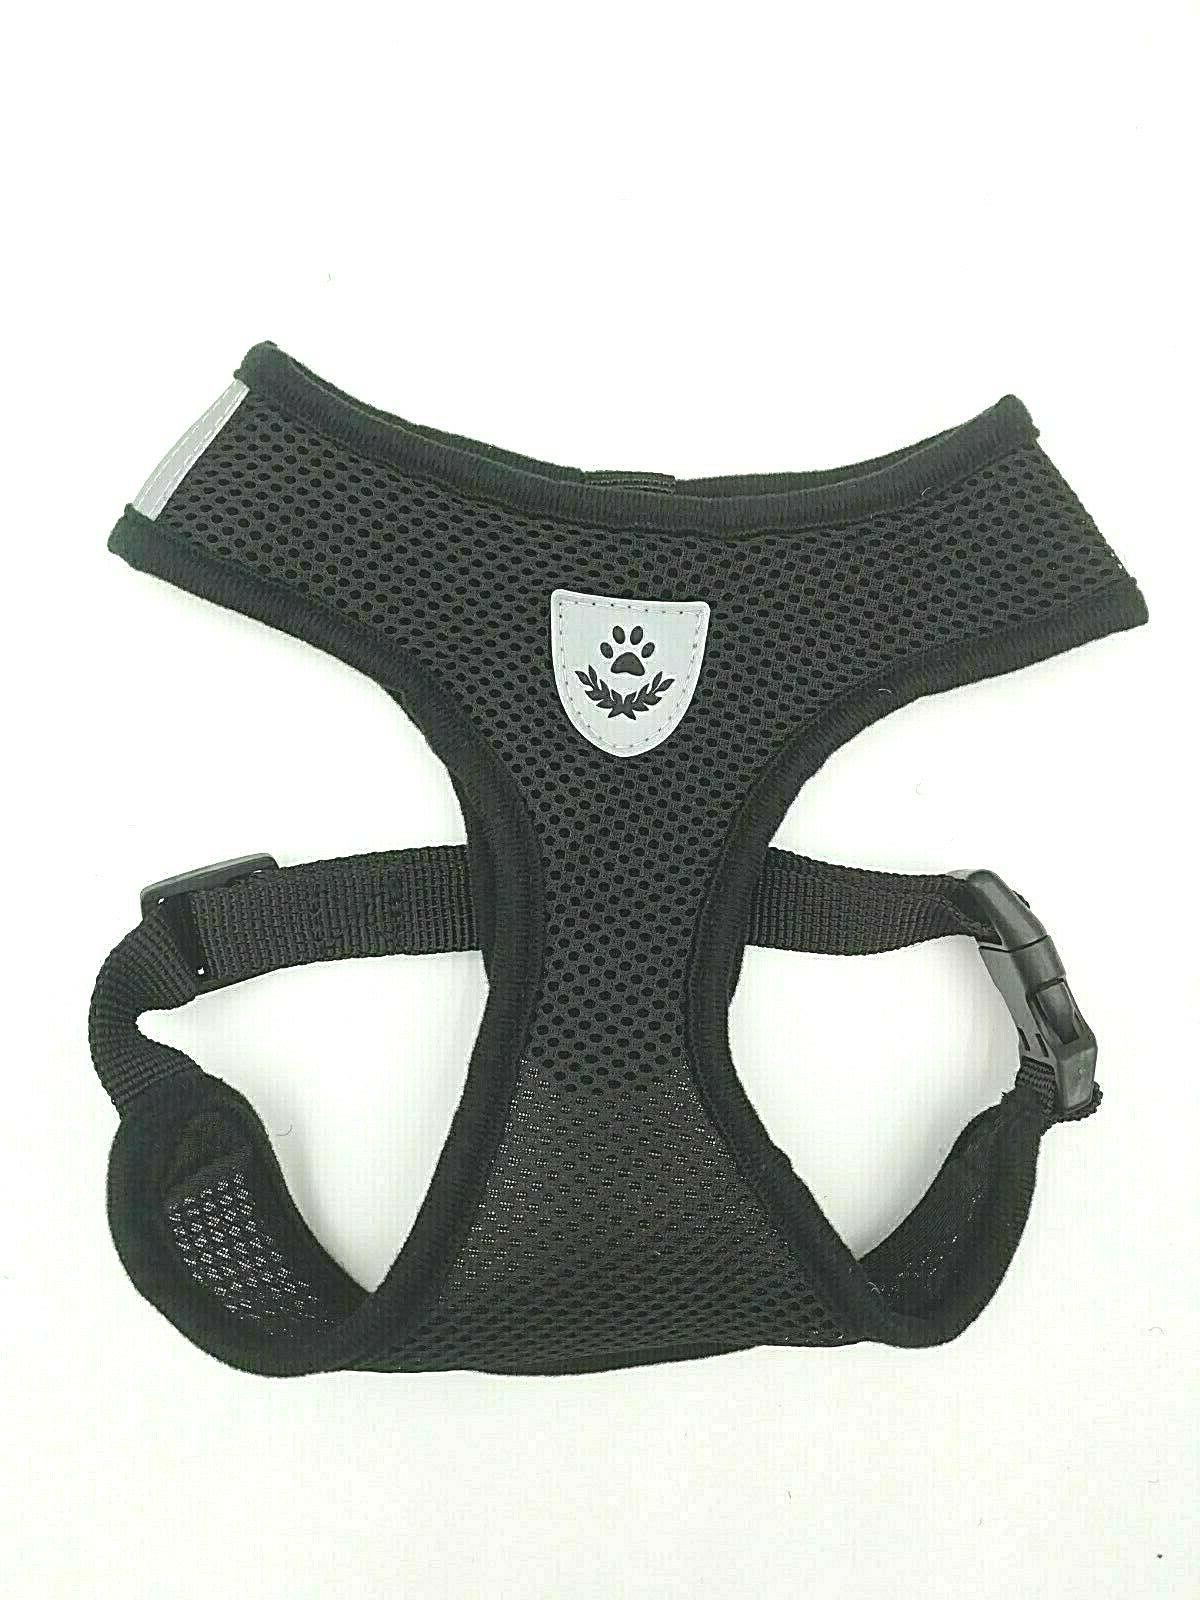 Mesh Padded Soft Puppy Pet Dog Harness Comfortable Many M